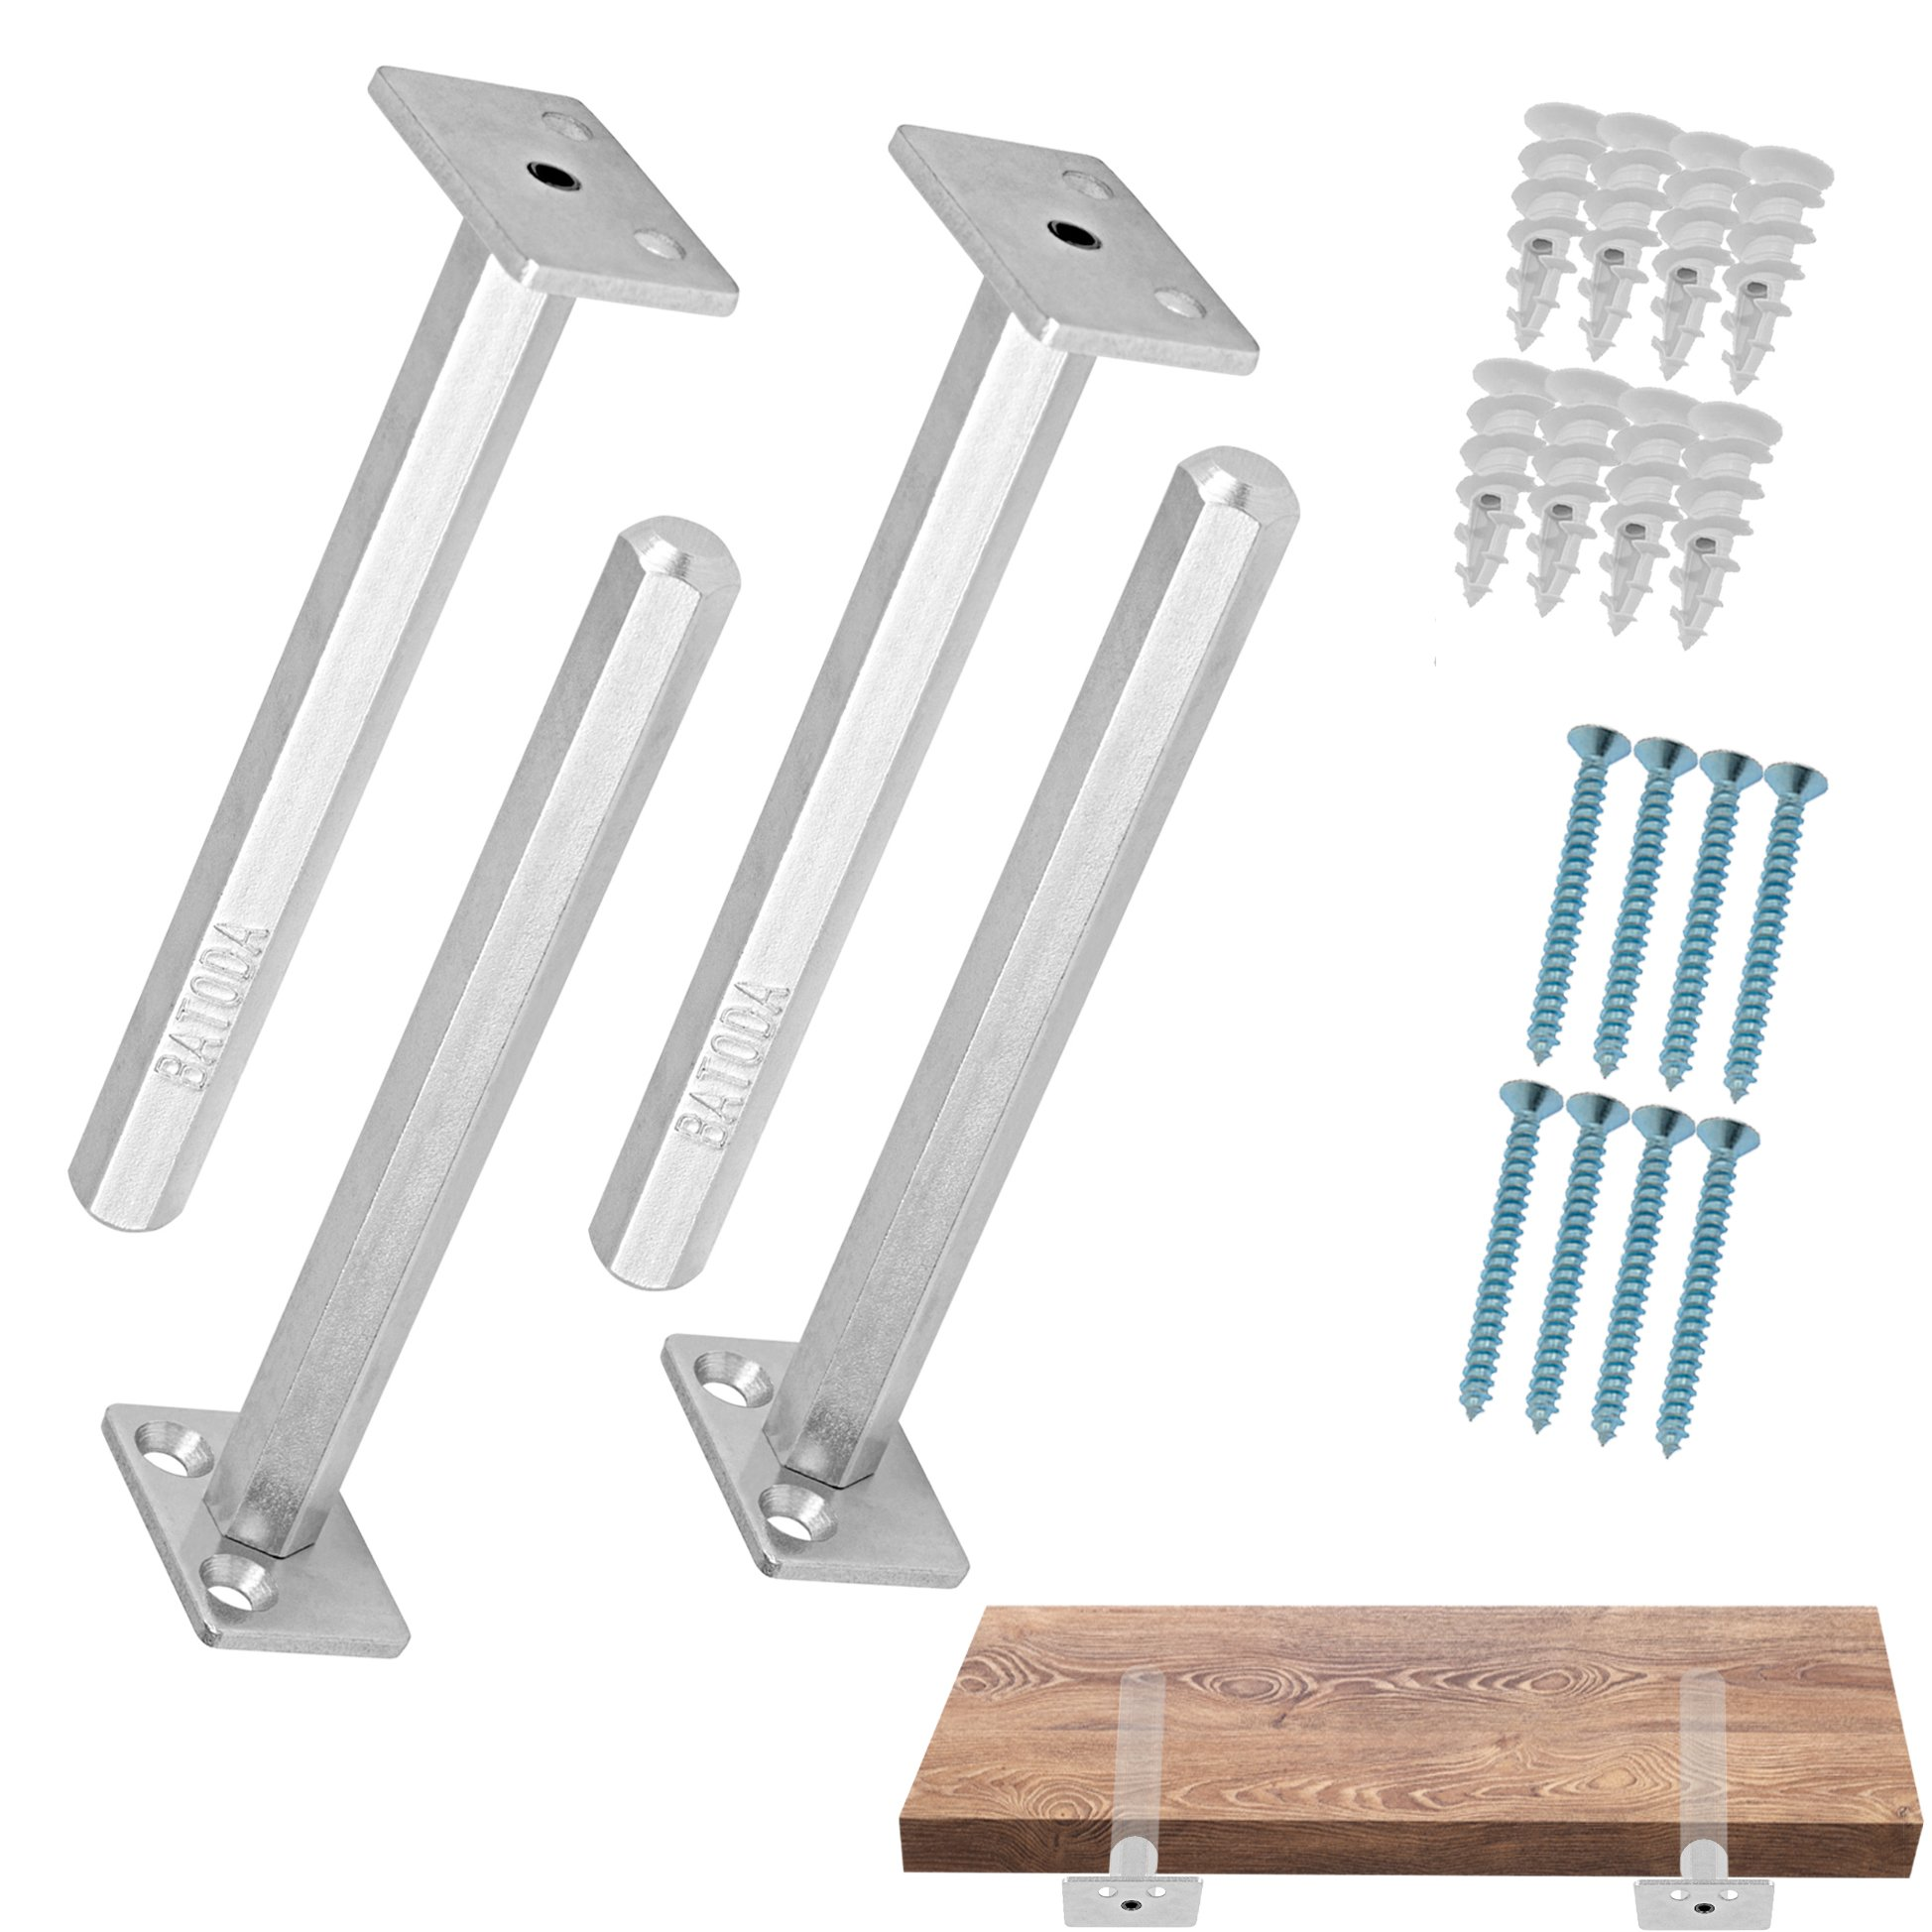 floating shelf bracket pcs galvanized steel blind concealed hidden brackets supports for wood shelves support screws small home desks furniture ikea bookshelf standard bookcase